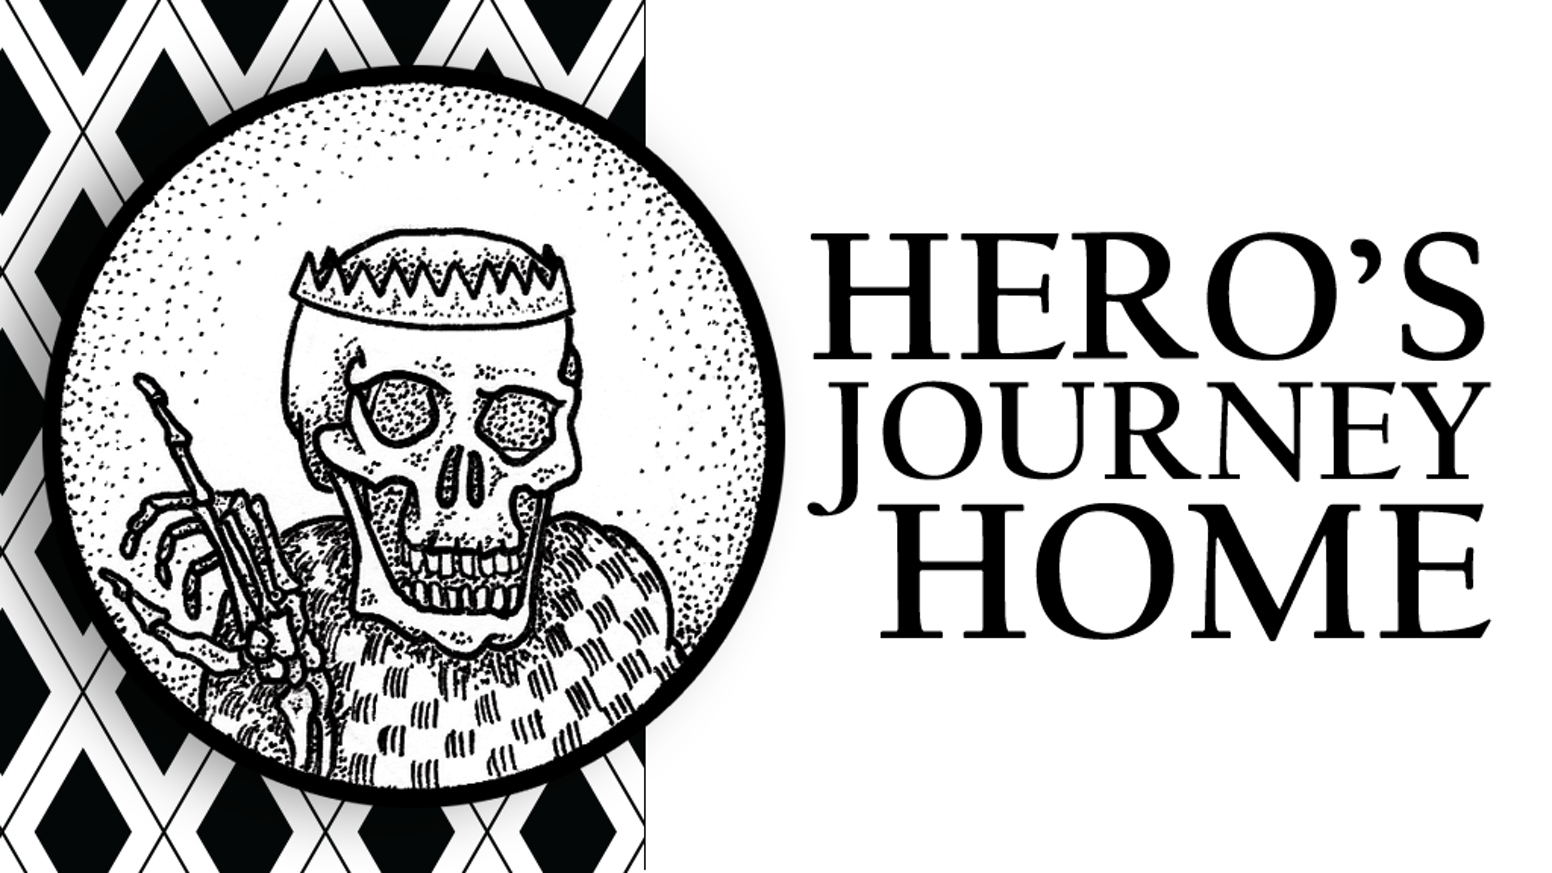 We're firing up another 200 copies of Hero's Journey Home!